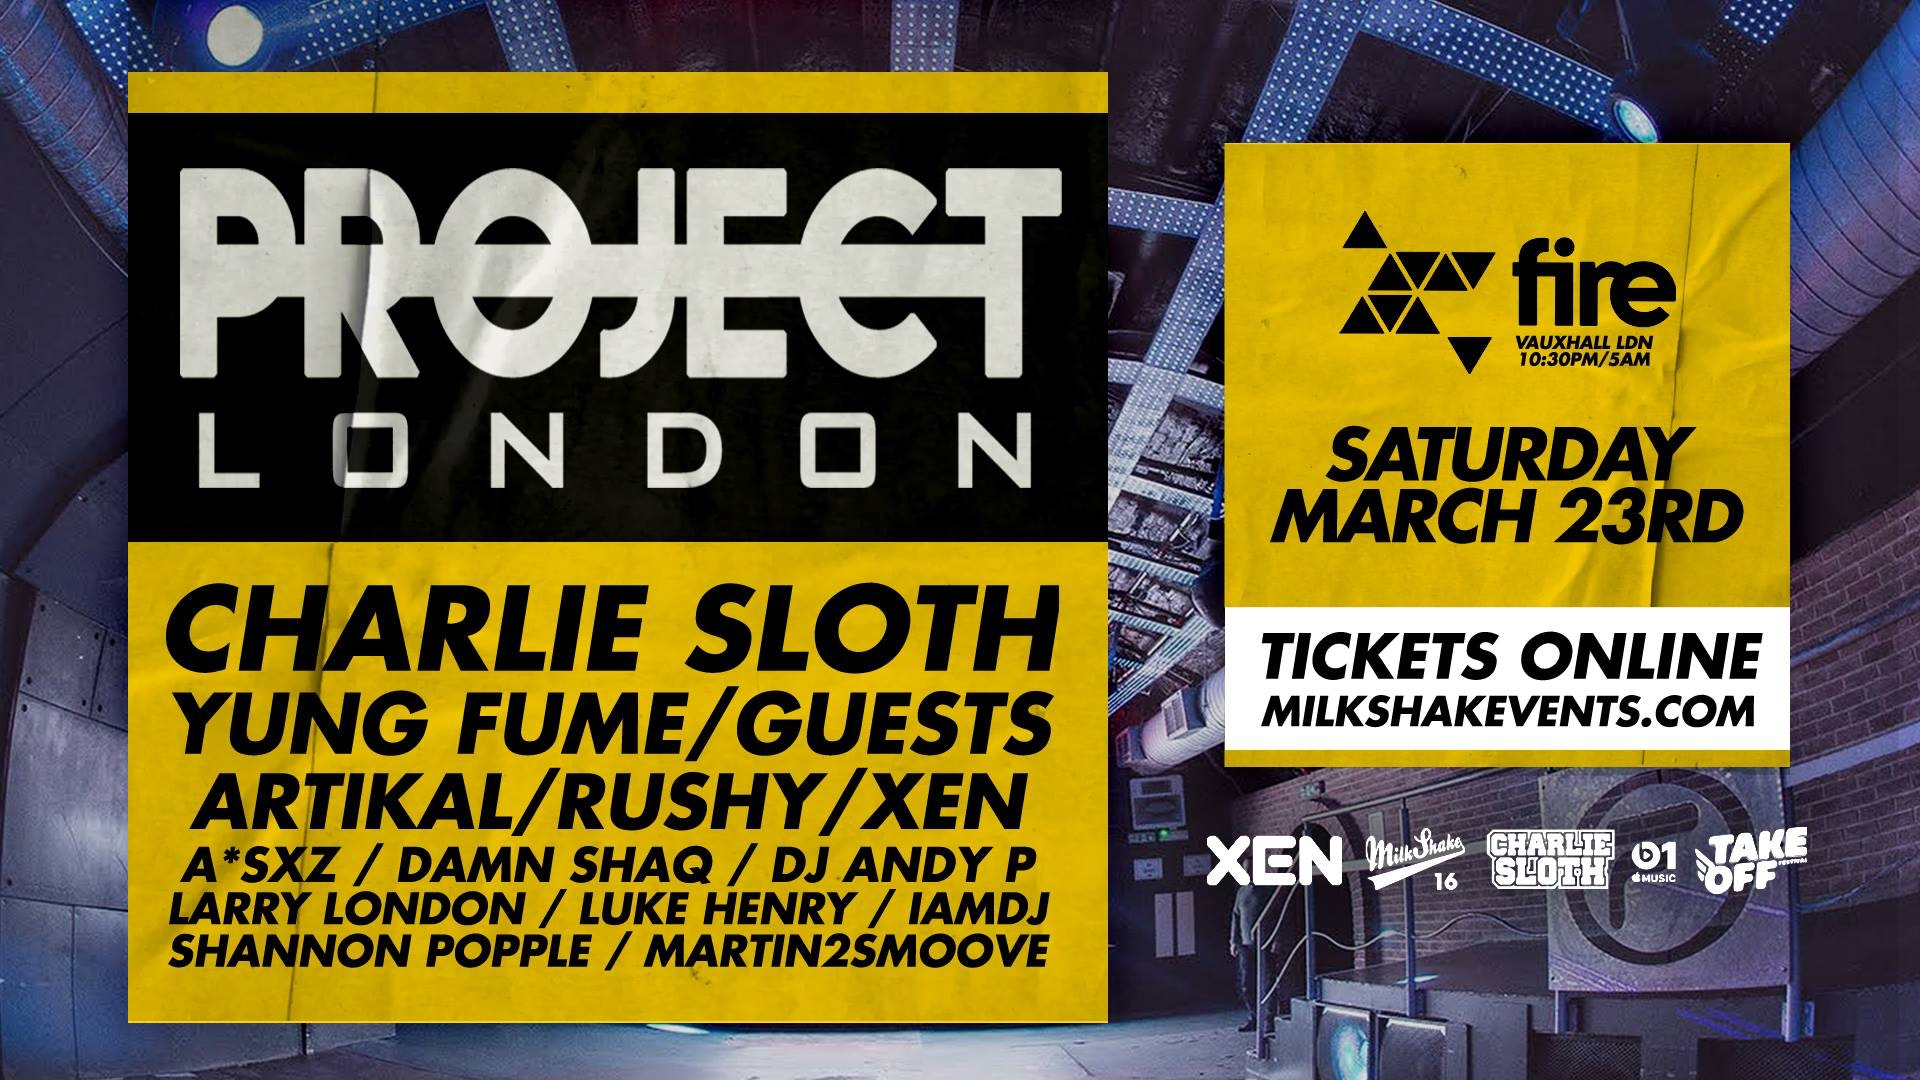 Project London TONIGHT – ft: Charlie Sloth, Yung Fume, Rushy, Xen Sounds & More | Fire, Vauxhall